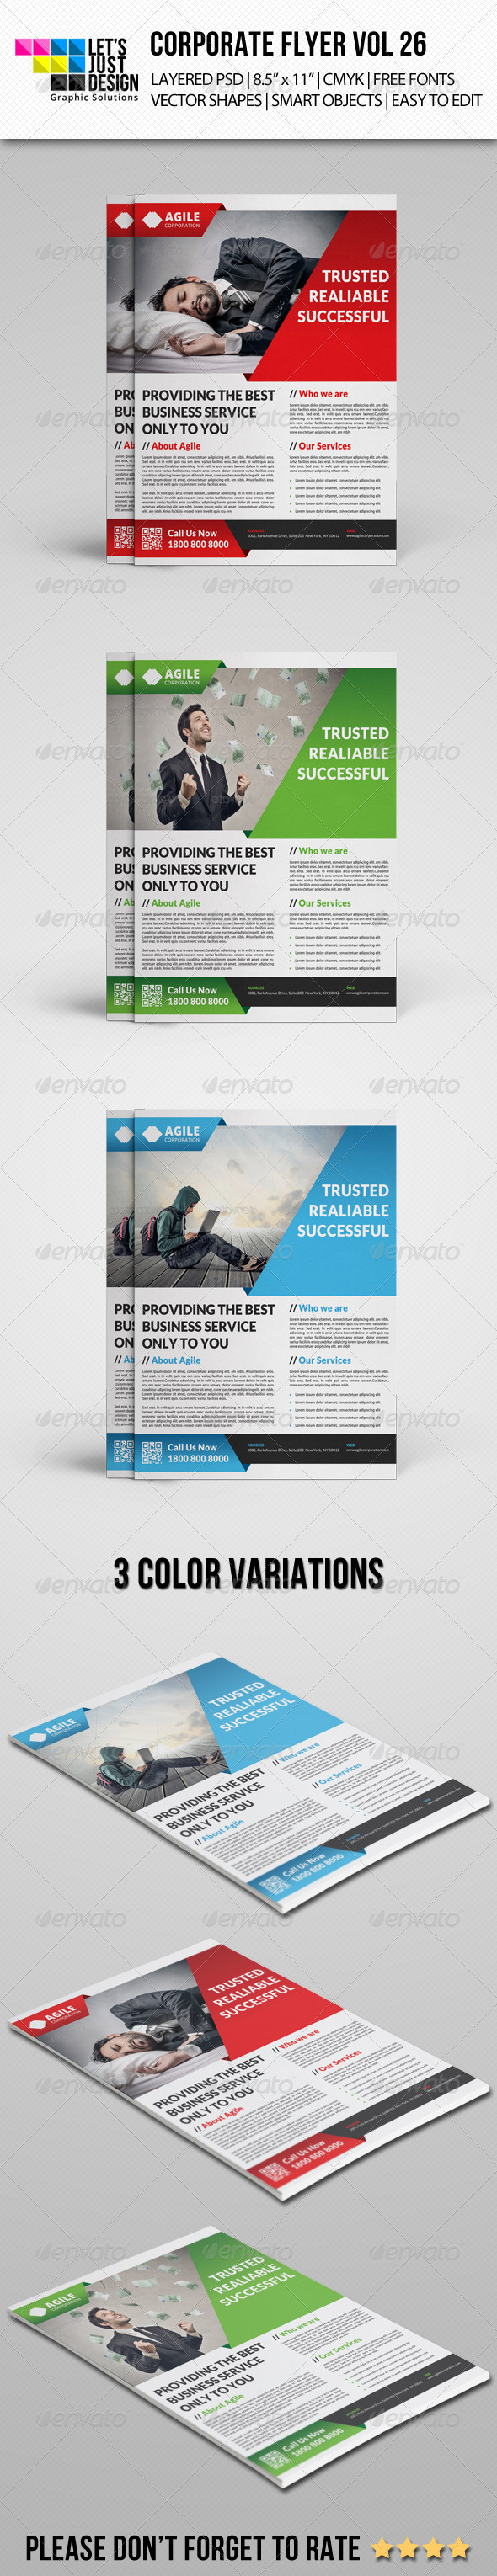 GraphicRiver Corporate Flyer Template Vol 26 8242814